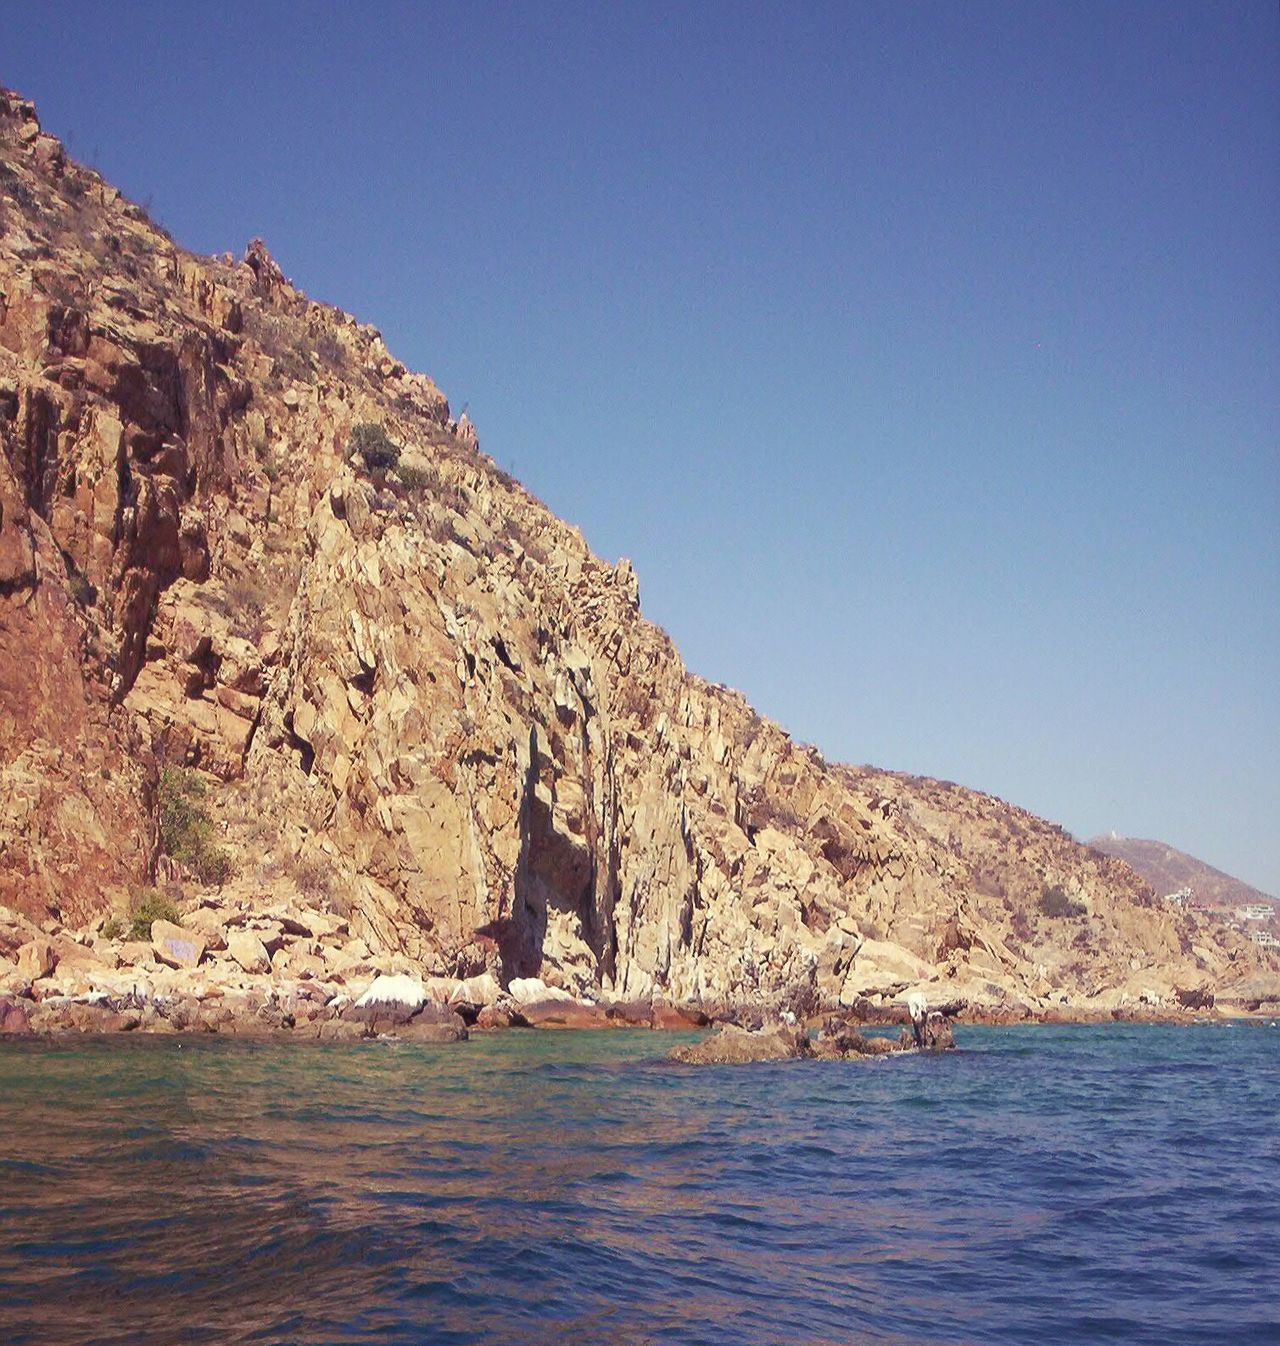 Blue Water Outdoors Nature Clear Sky Sea Day Beauty In Nature Sky No People Cabo San Lucas Mexico Vacations EyeEmNewHere Horizon Over Water Coastal Feature Tranquil Scene Rock - Object Rock Formation Rocks And Sea Rocks In Water Rocks And Water Pacific Ocean Copy Space